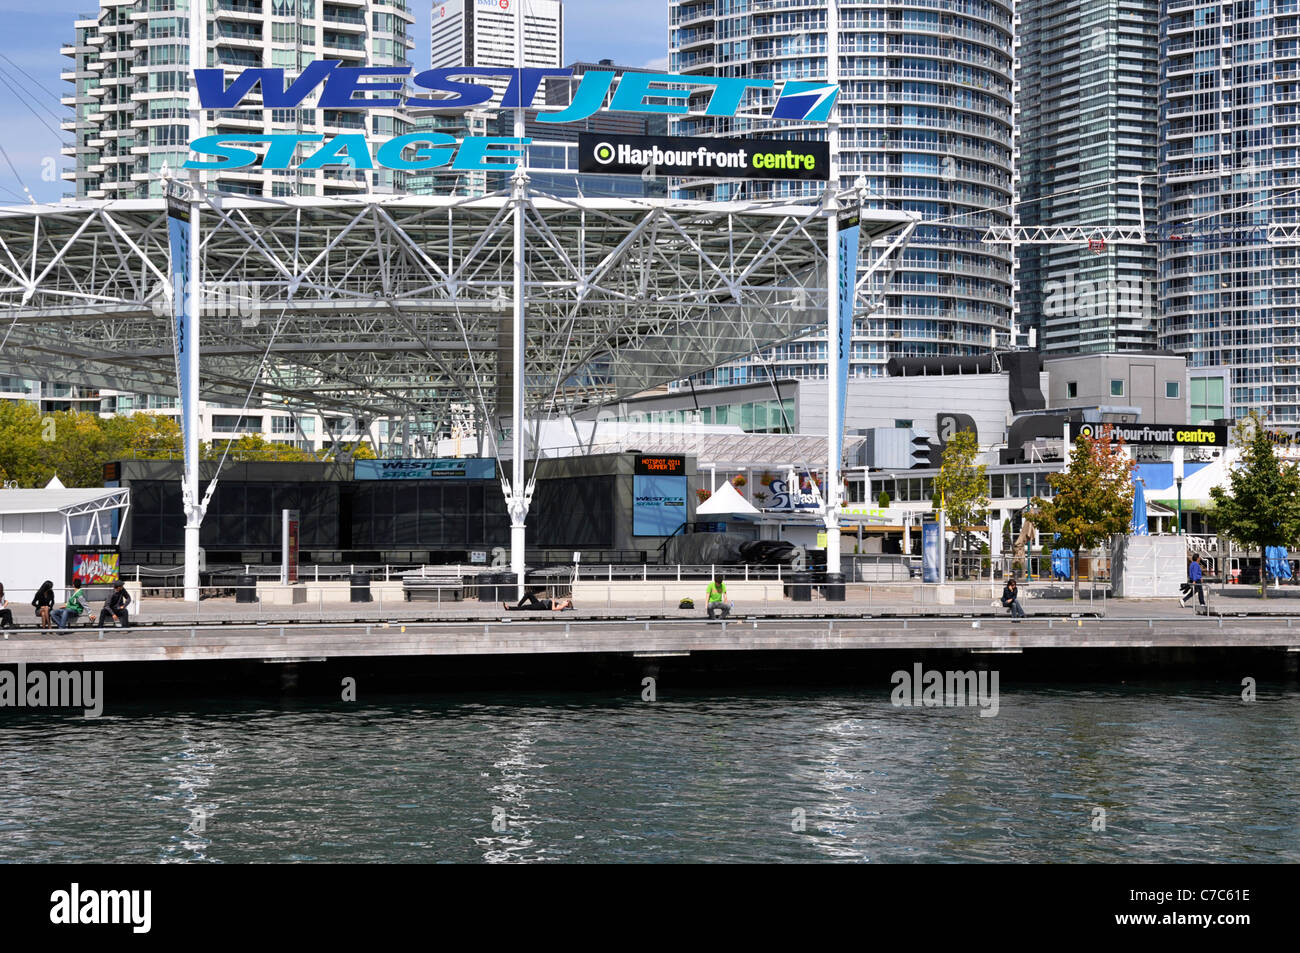 Toronto Harbourfront Centre, Stage, Queens Quay - Stock Image